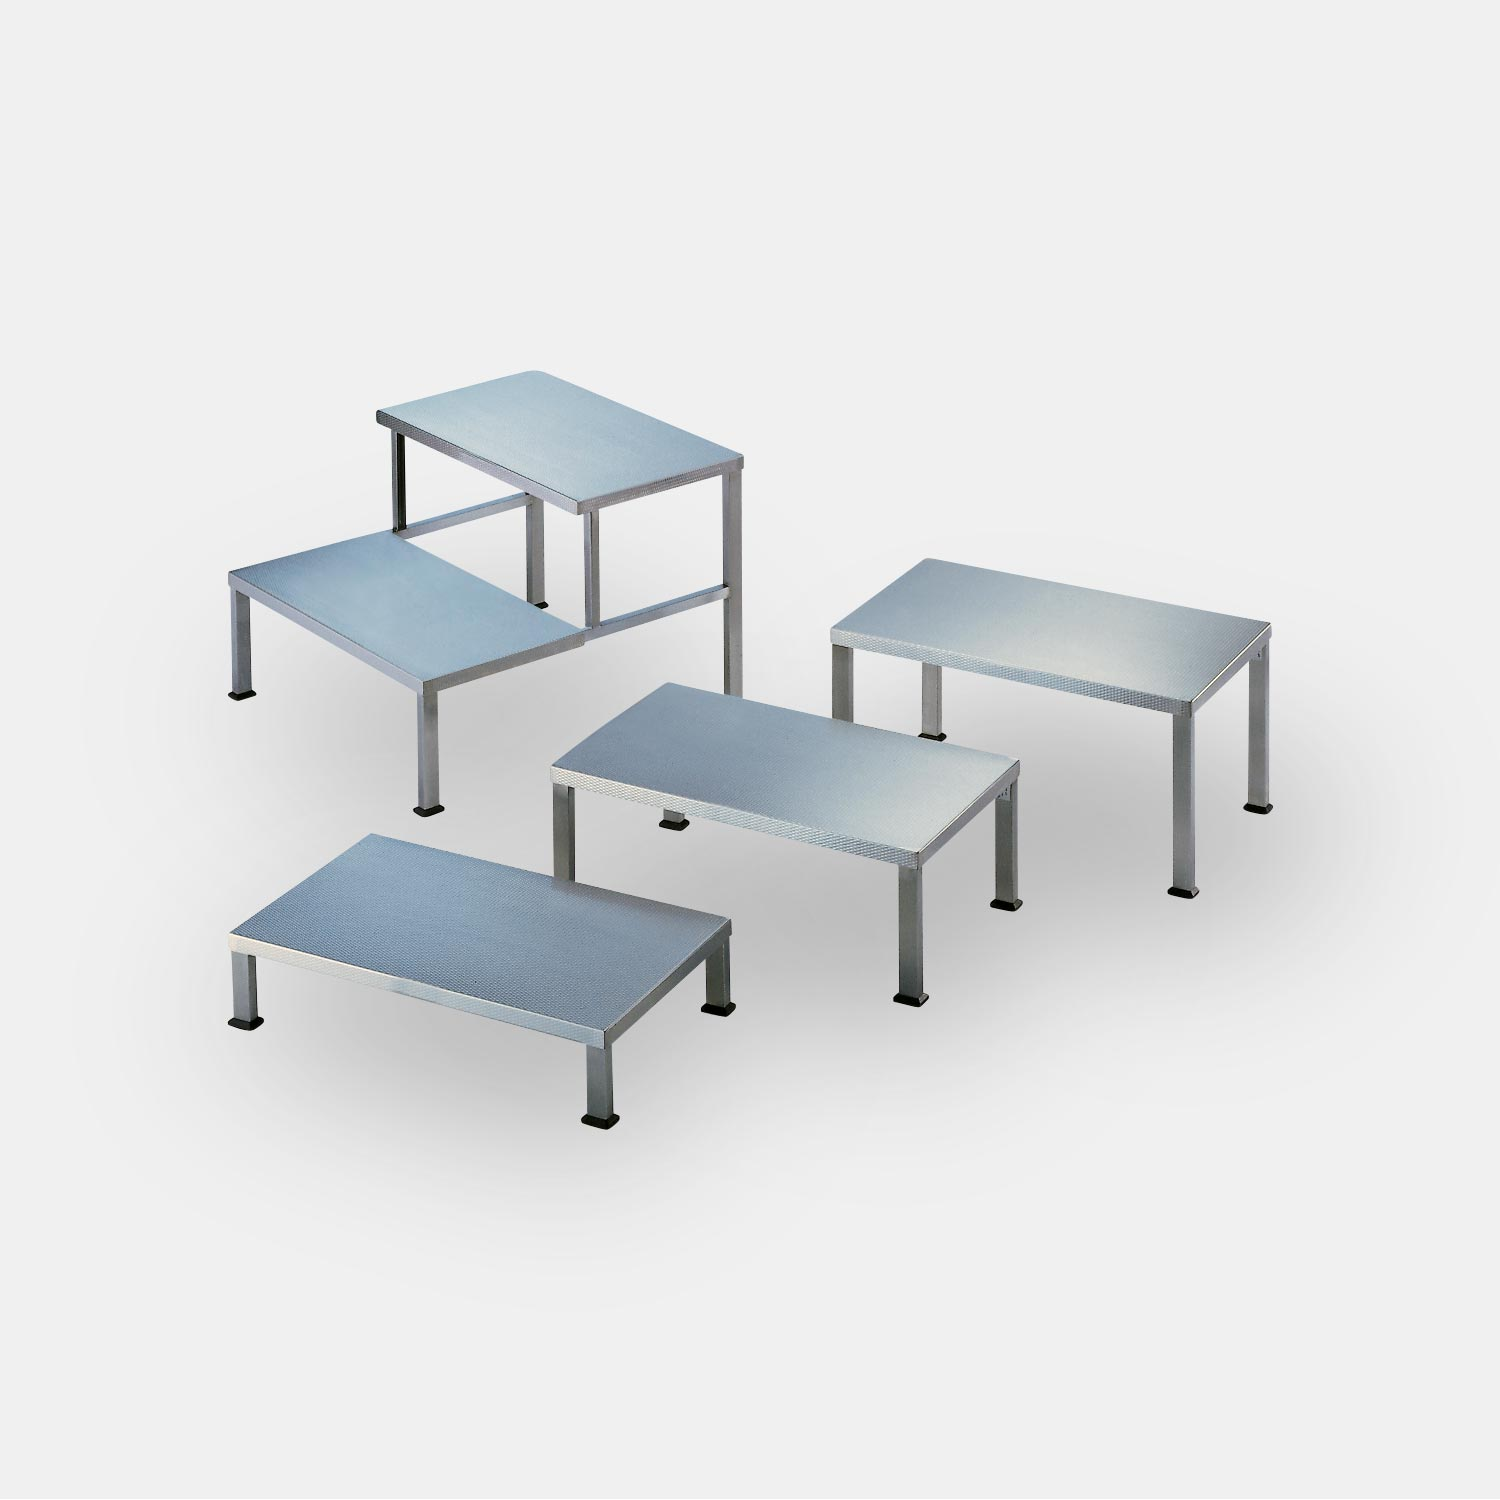 furniture for operating theatres